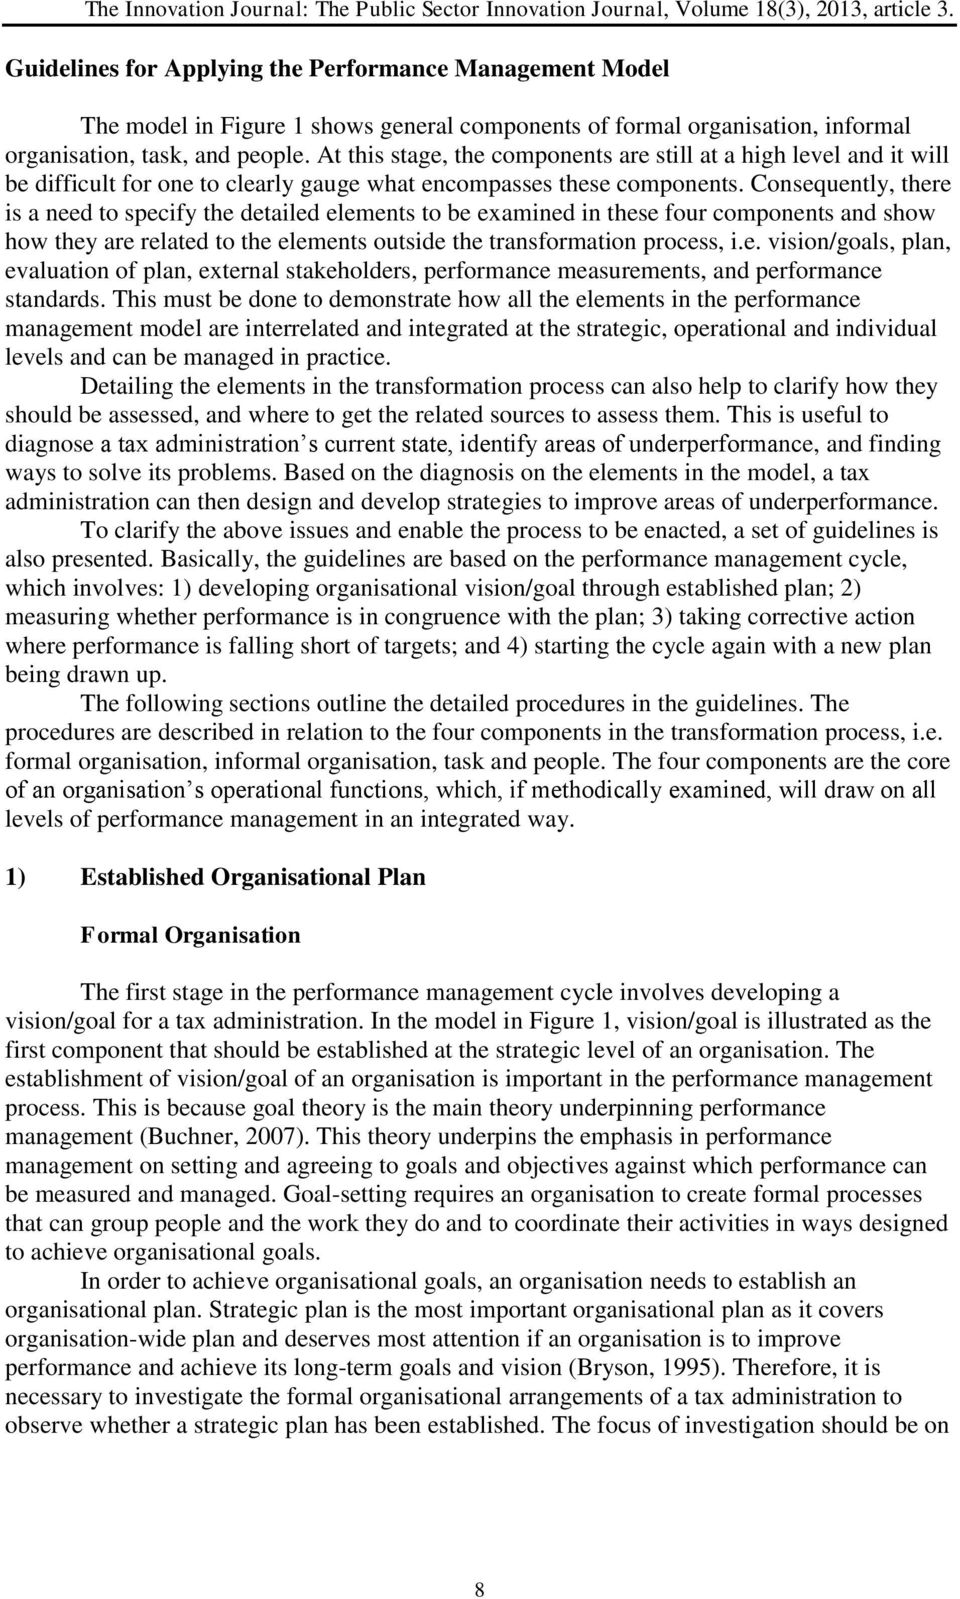 Consequently, there is a need to specify the detailed elements to be examined in these four components and show how they are related to the elements outside the transformation process, i.e. vision/goals, plan, evaluation of plan, external stakeholders, performance measurements, and performance standards.